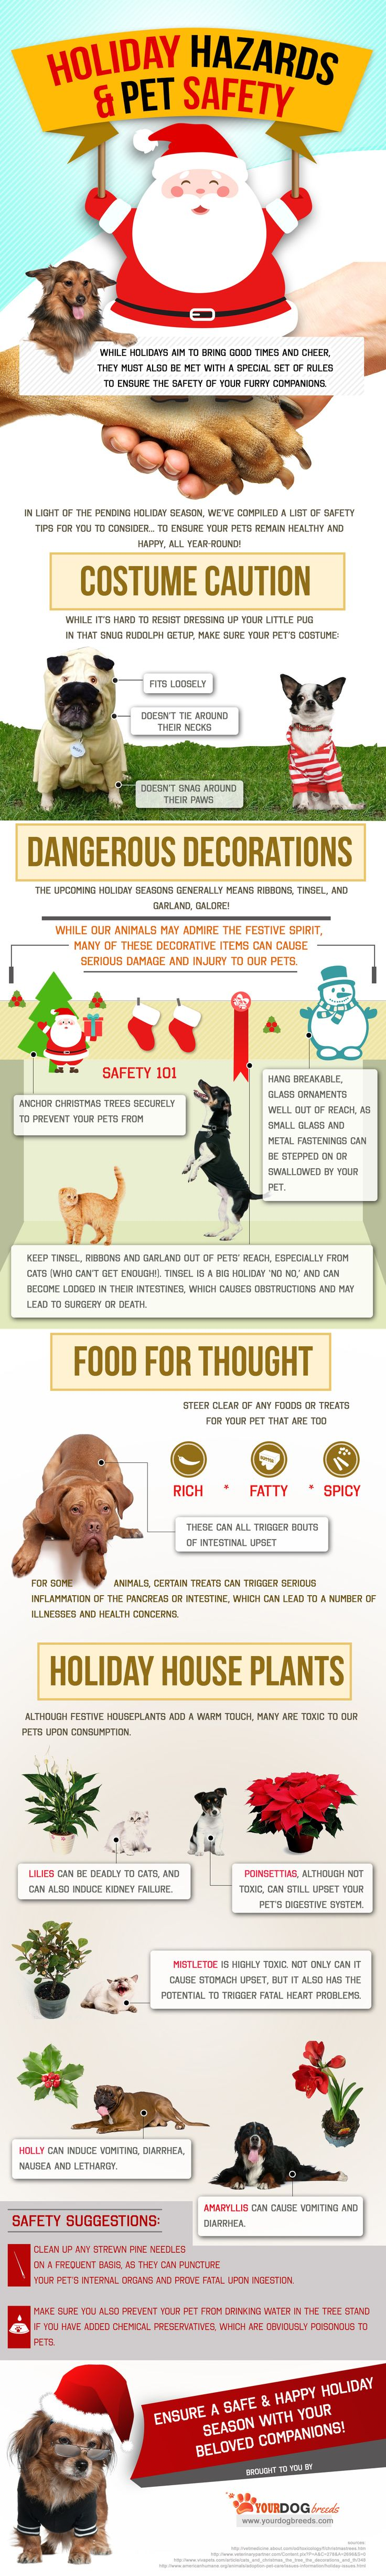 Hot weather - tips for keeping your cat cool